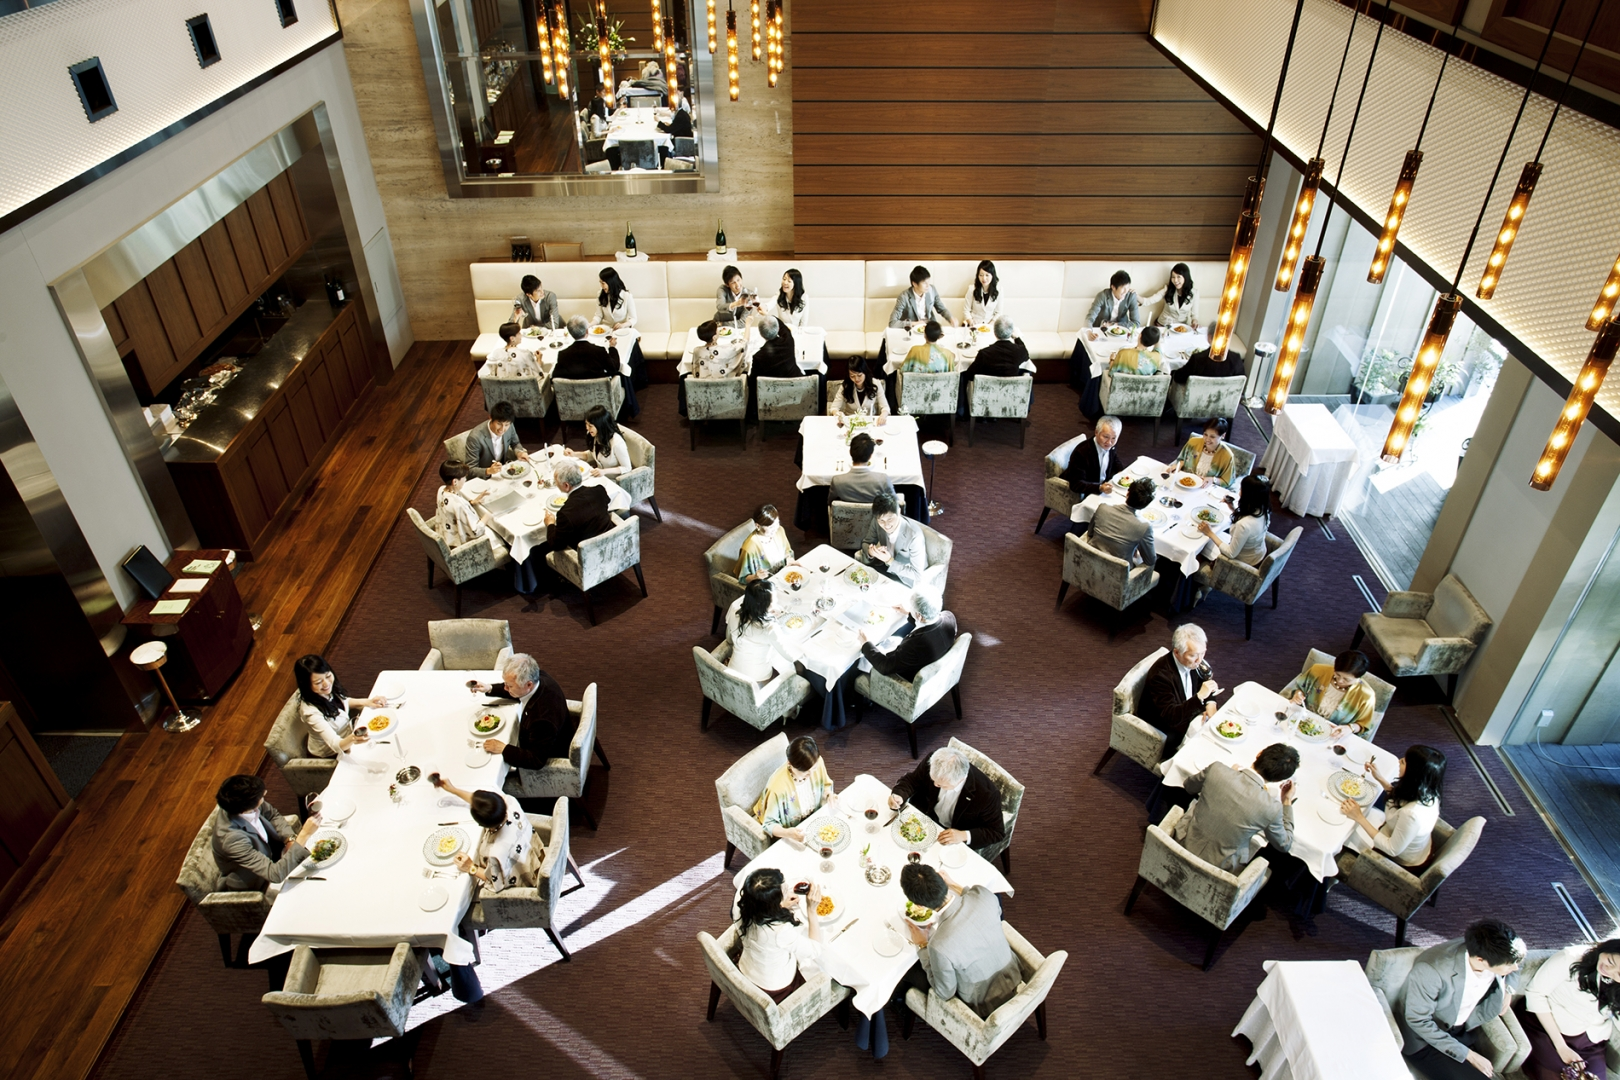 aerial view of diners in a restaurant